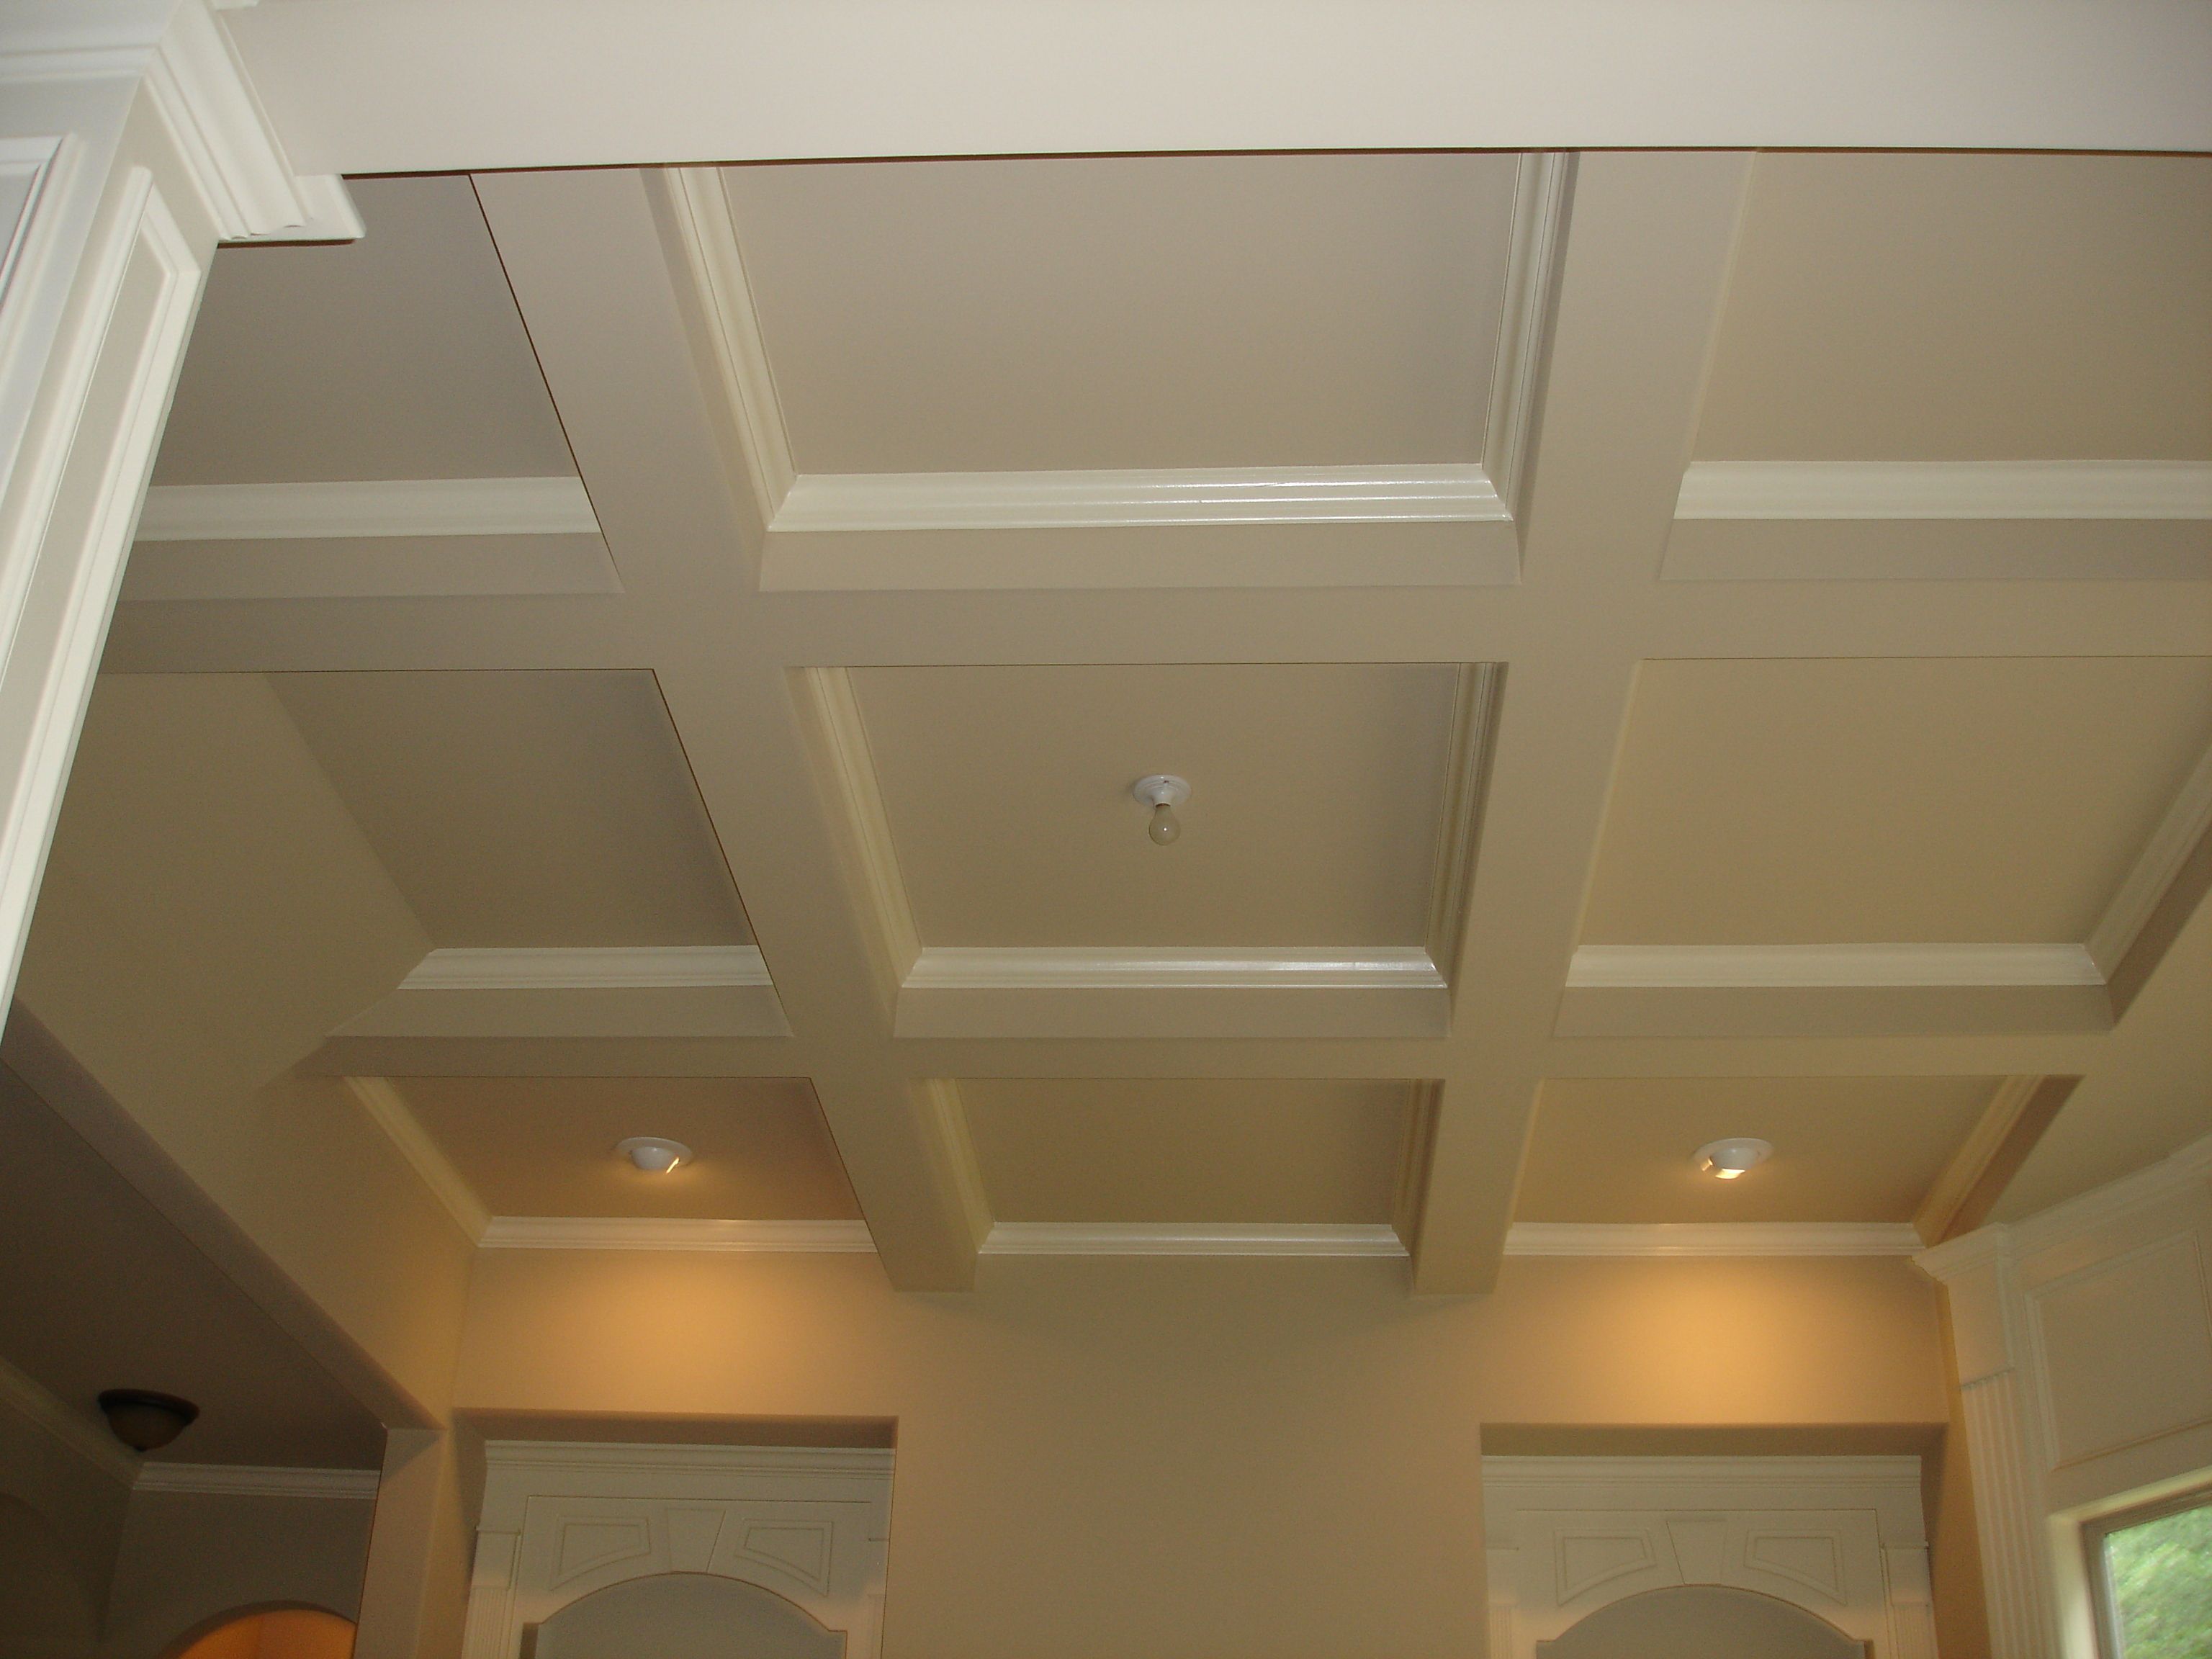 Coffered Ceiling Coffered Ceiling With X Boxes And - Cornice crown moulding toronto wainscoting coffered ceiling